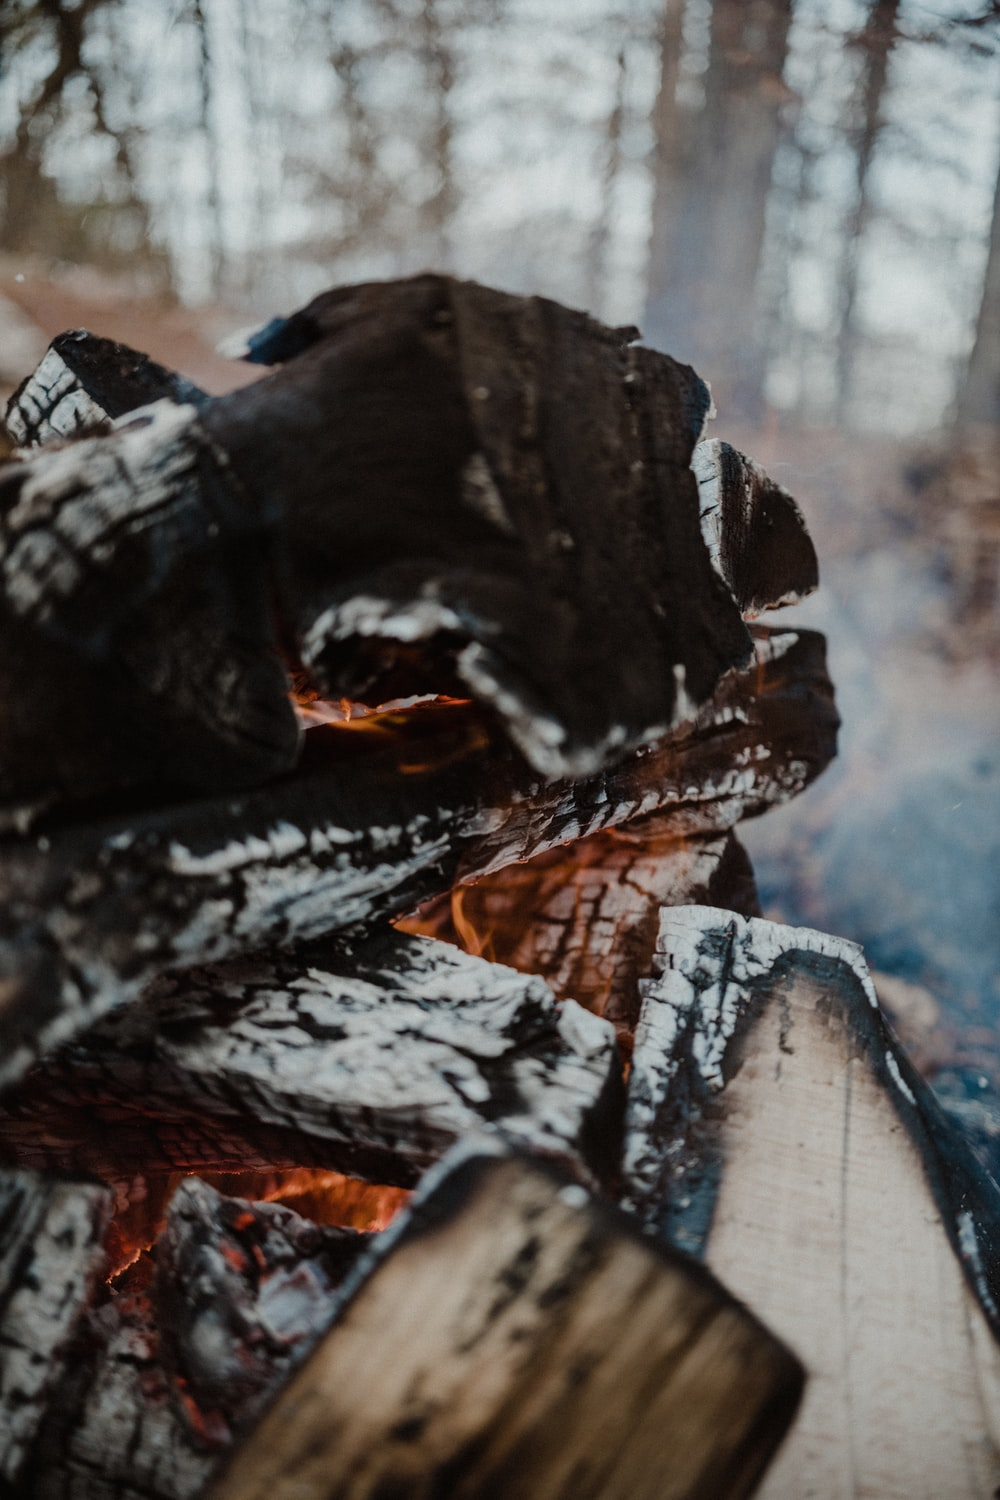 bonfire in forest